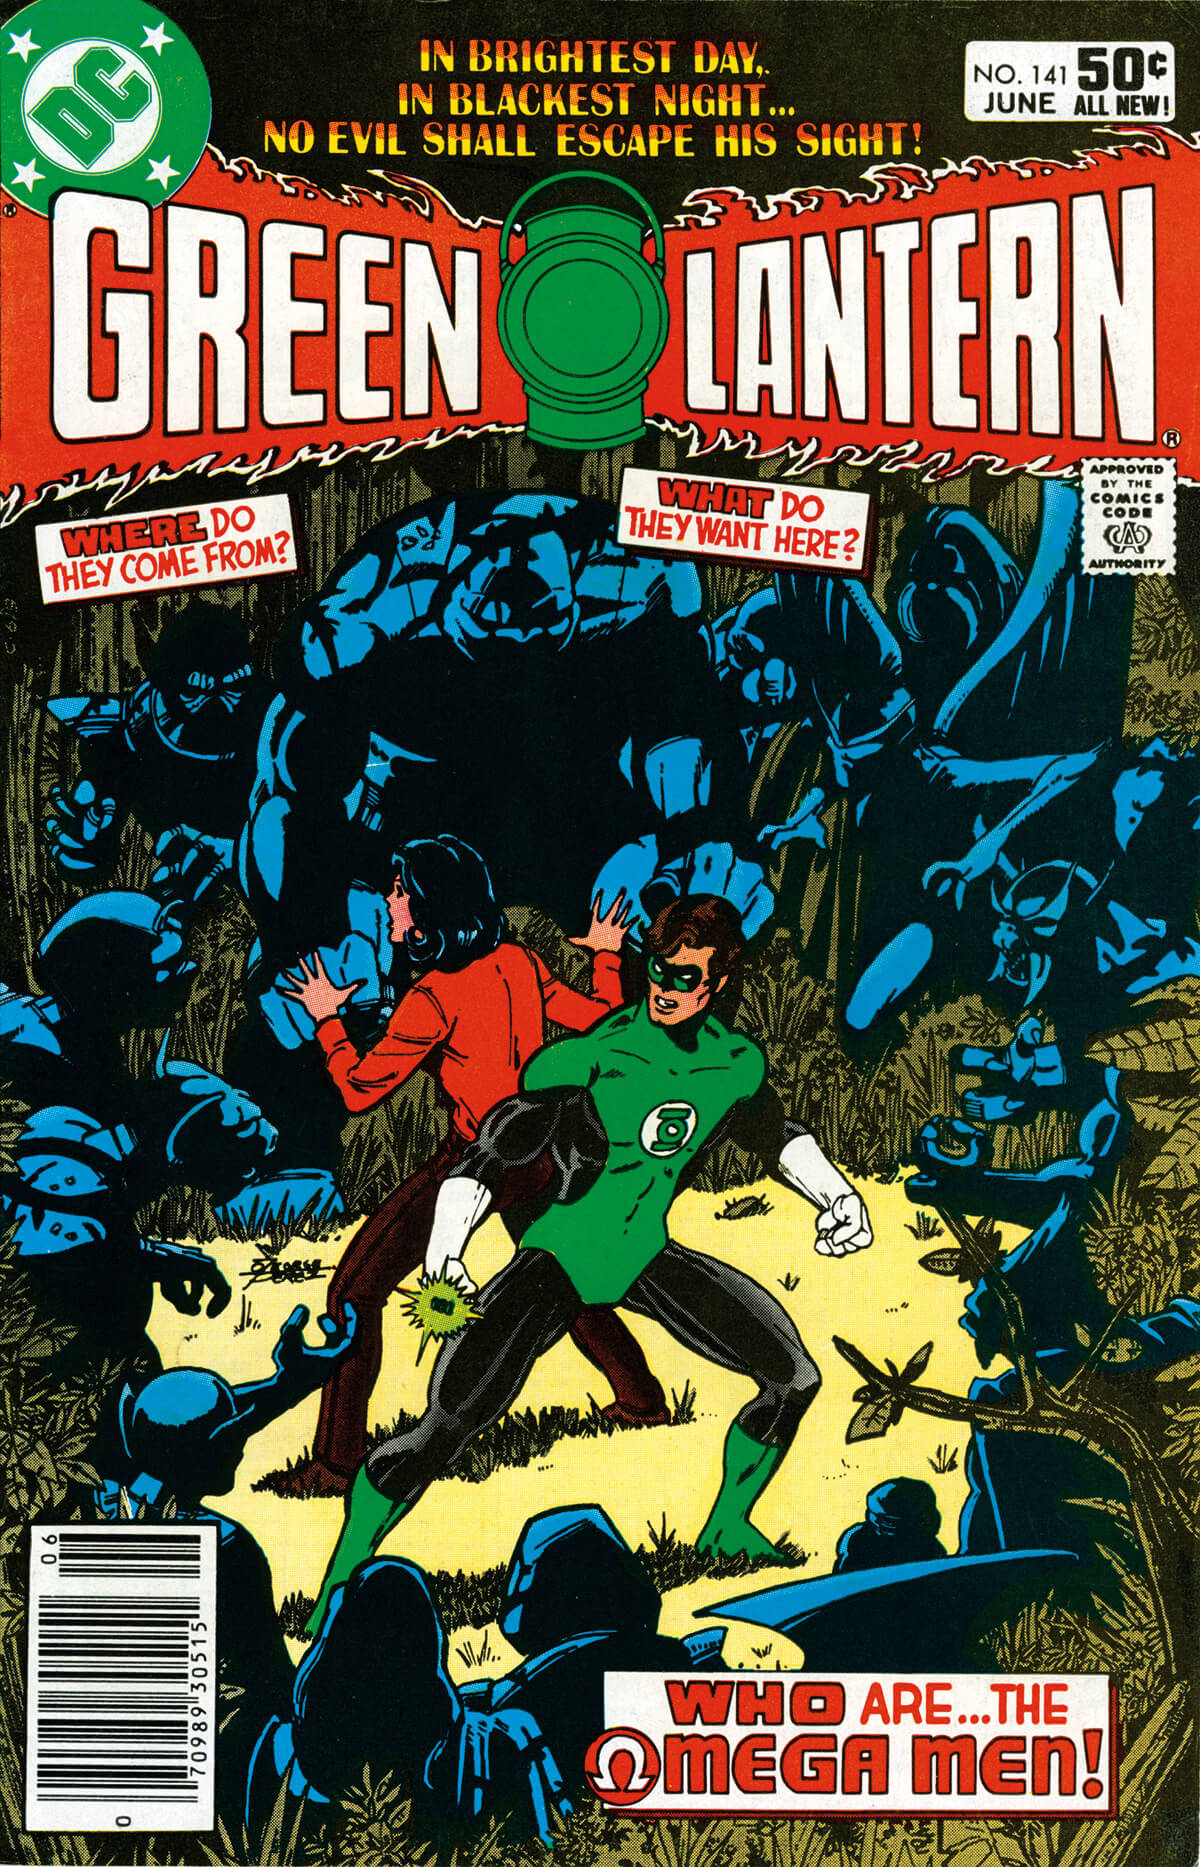 Green Lantern 141 Cover by George Pérez